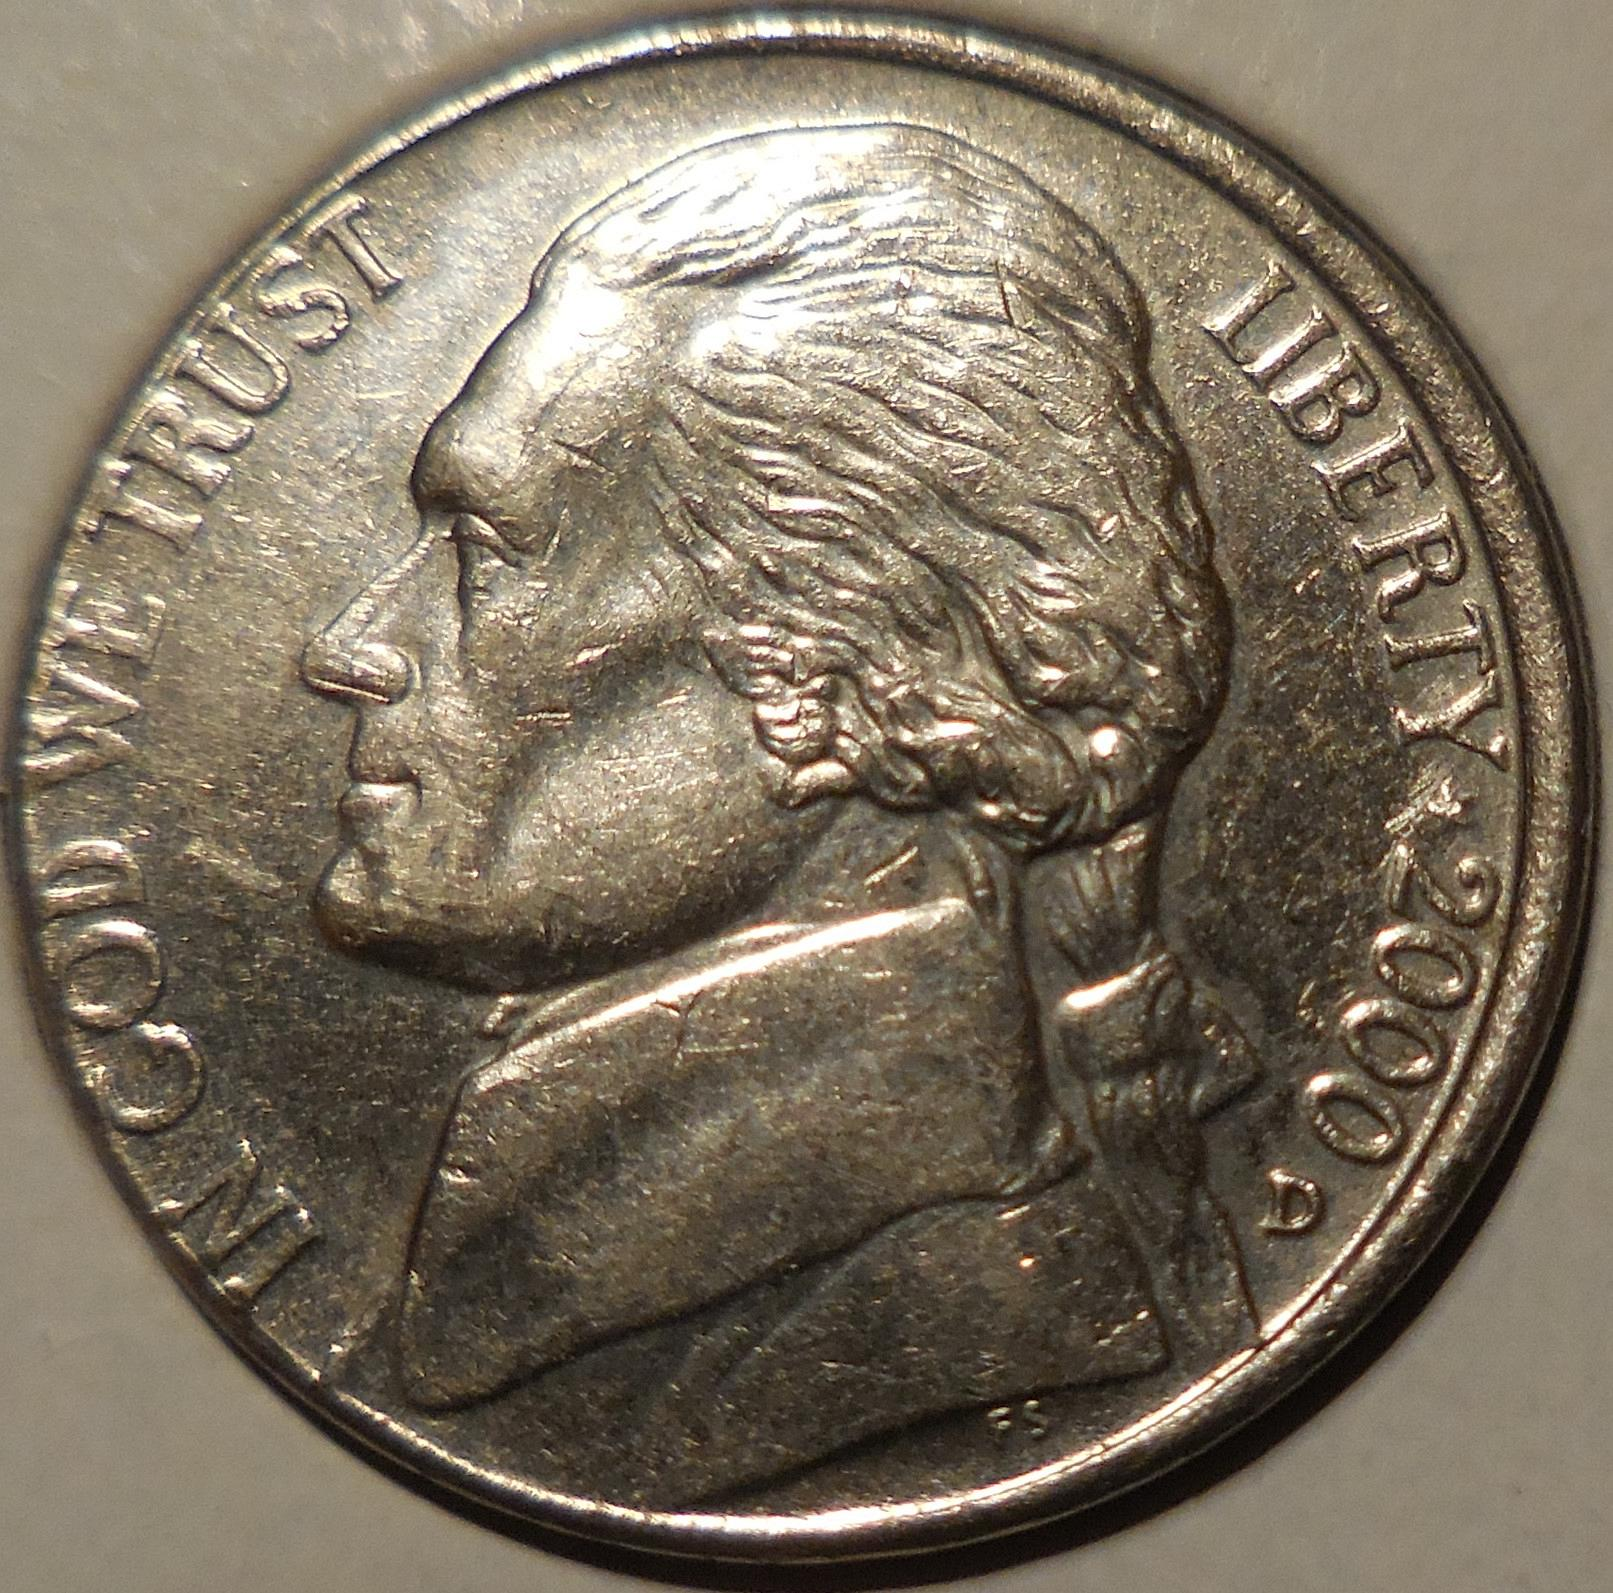 2000-D Jefferson Nickel Misaligned Die Error - for sale, buy now